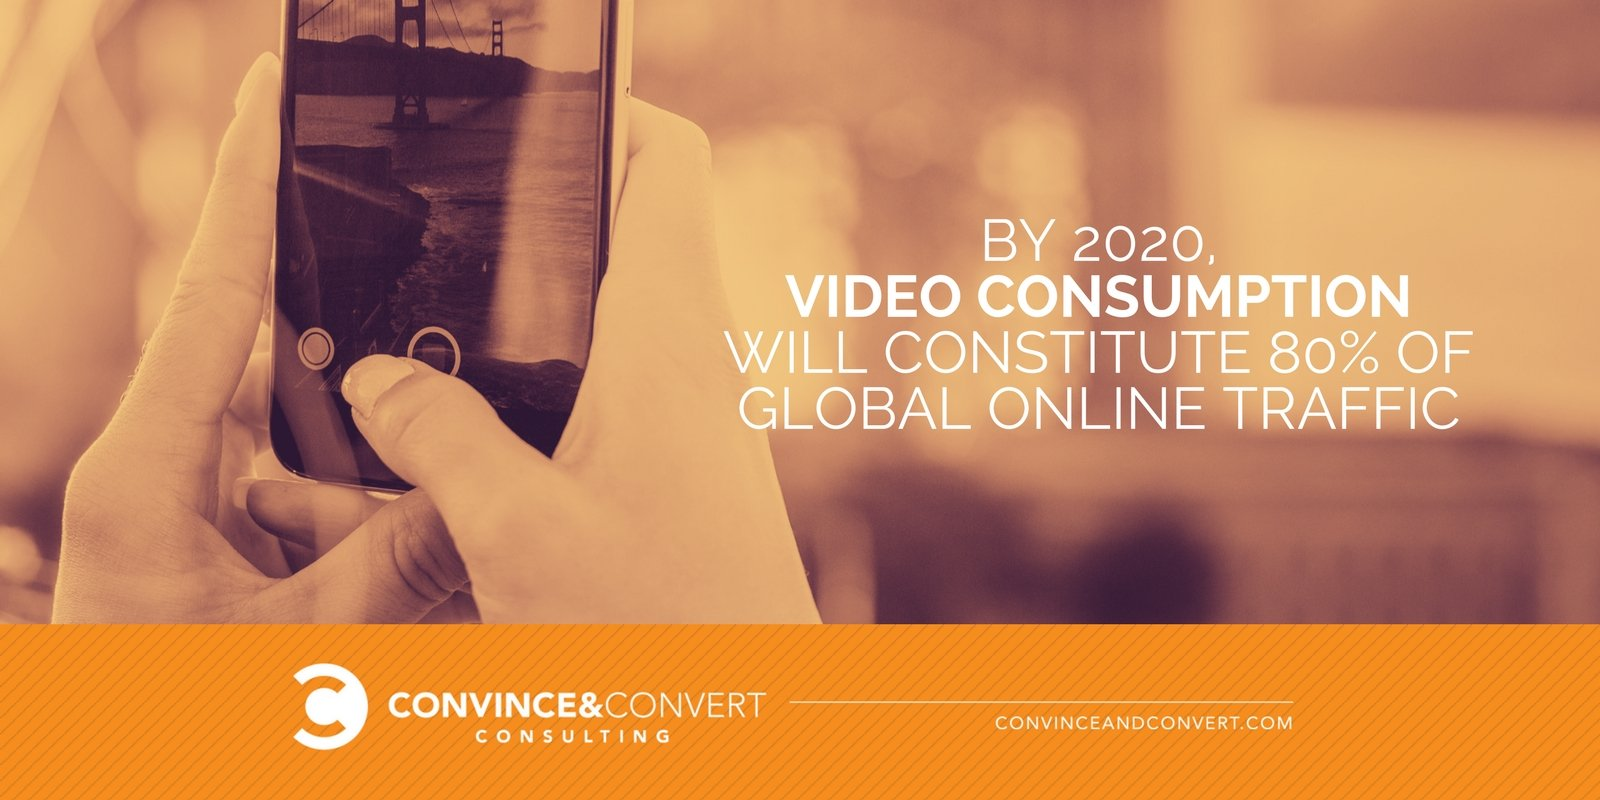 Video will constitute 80 percent of traffic by 2020